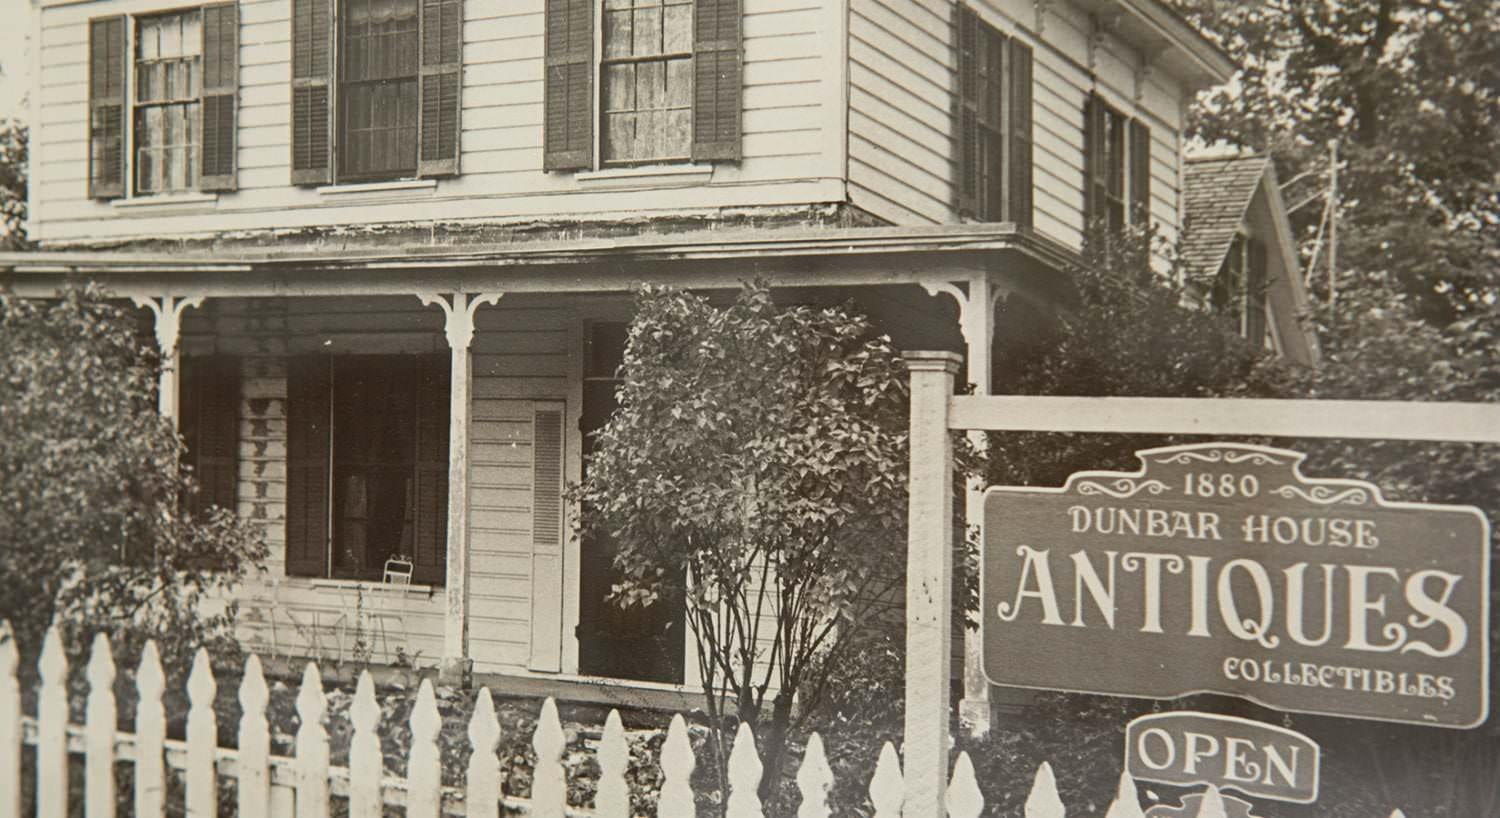 Old black and white photo of the Dunbar House and it's sign for antiques and collectibles